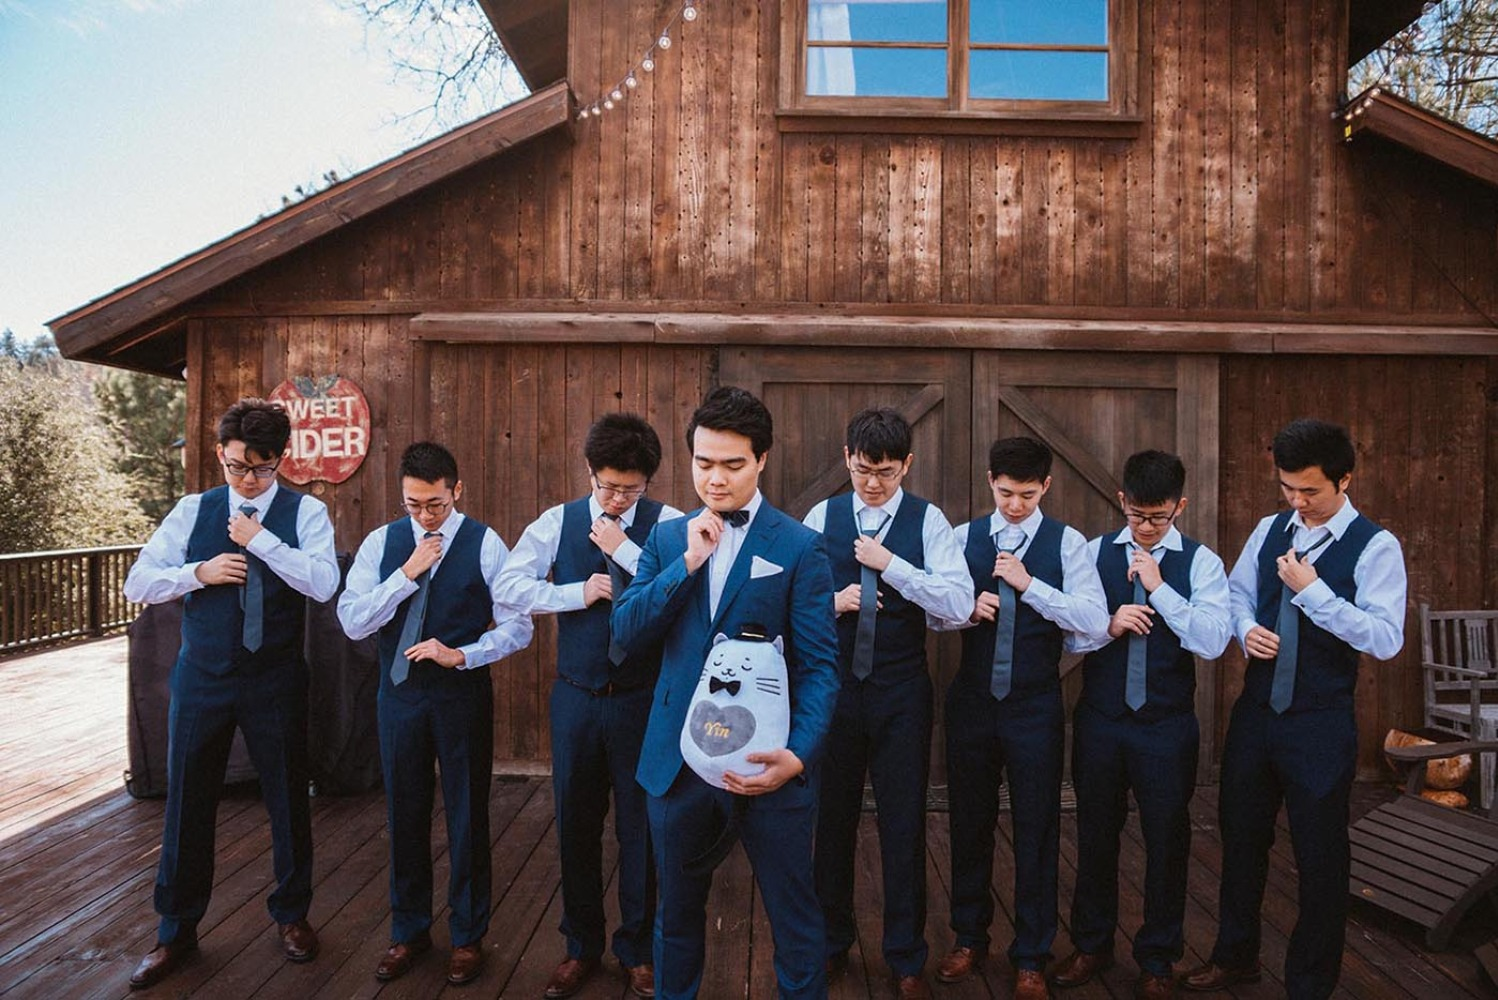 groom and his men in navy blue